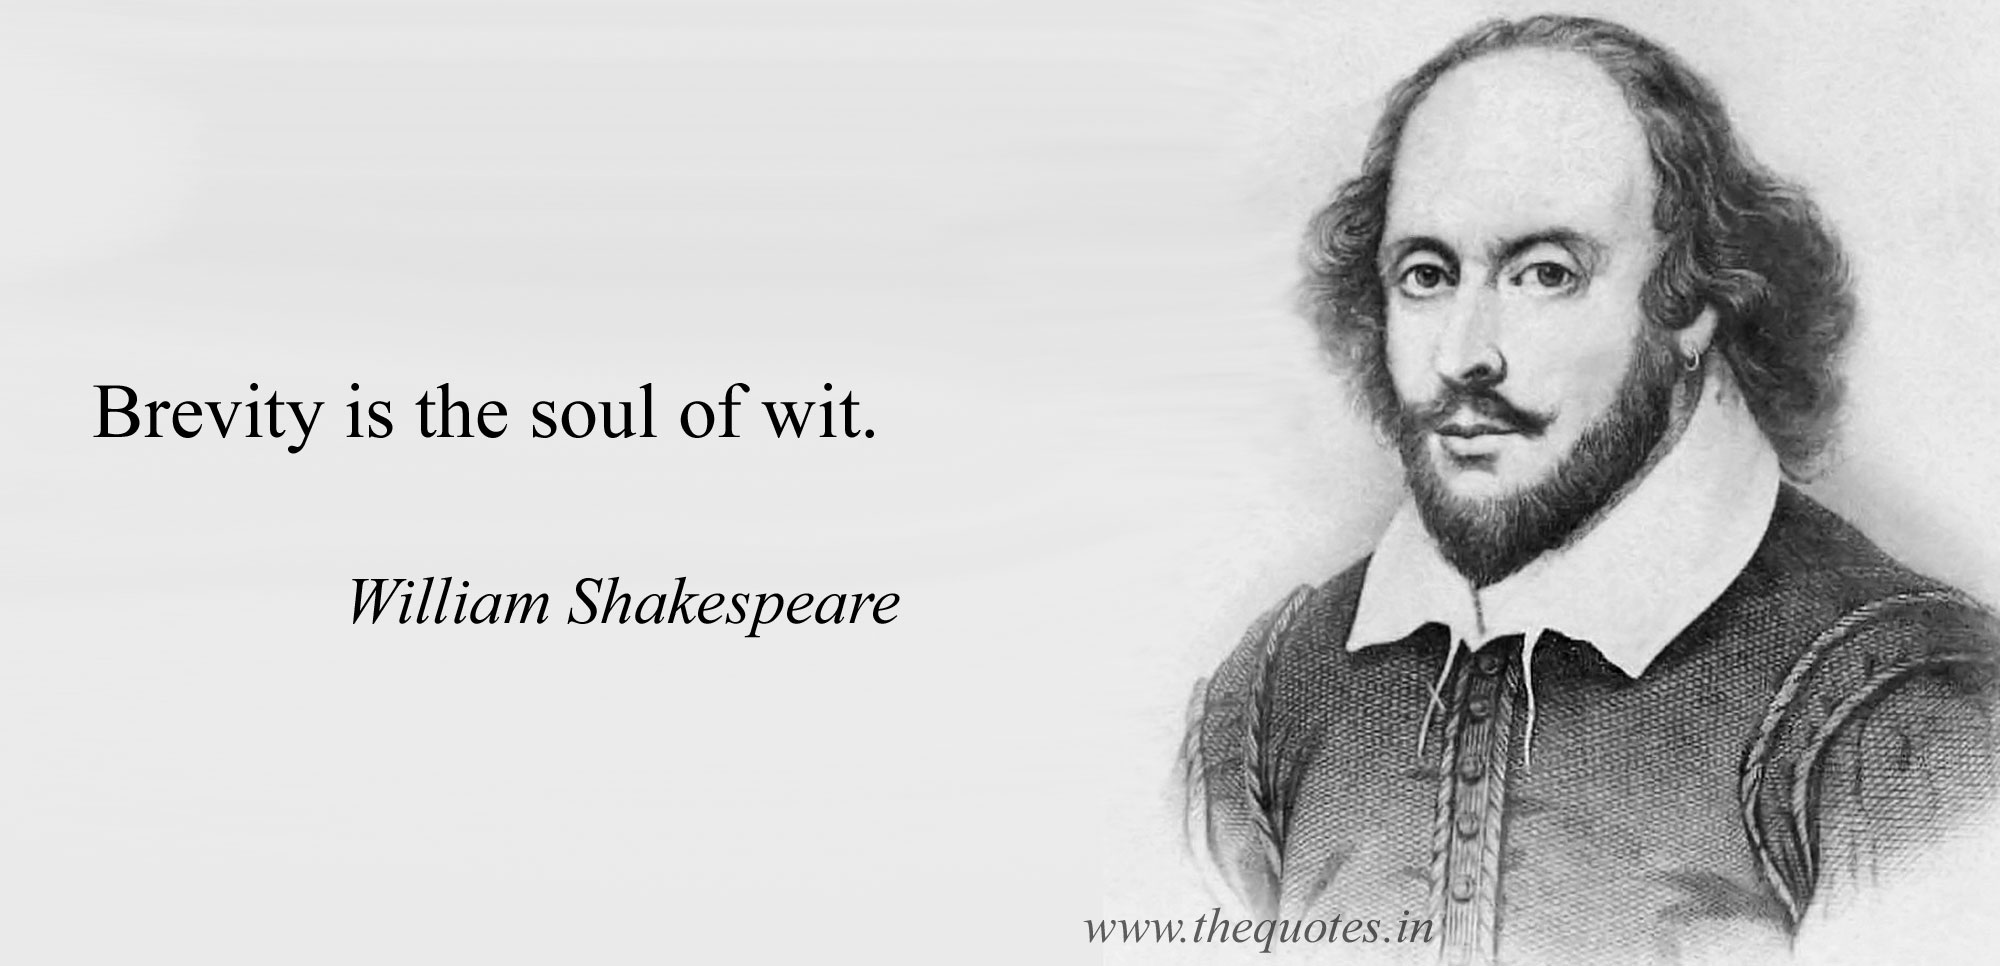 how to write better emails, brevity, shakespeare